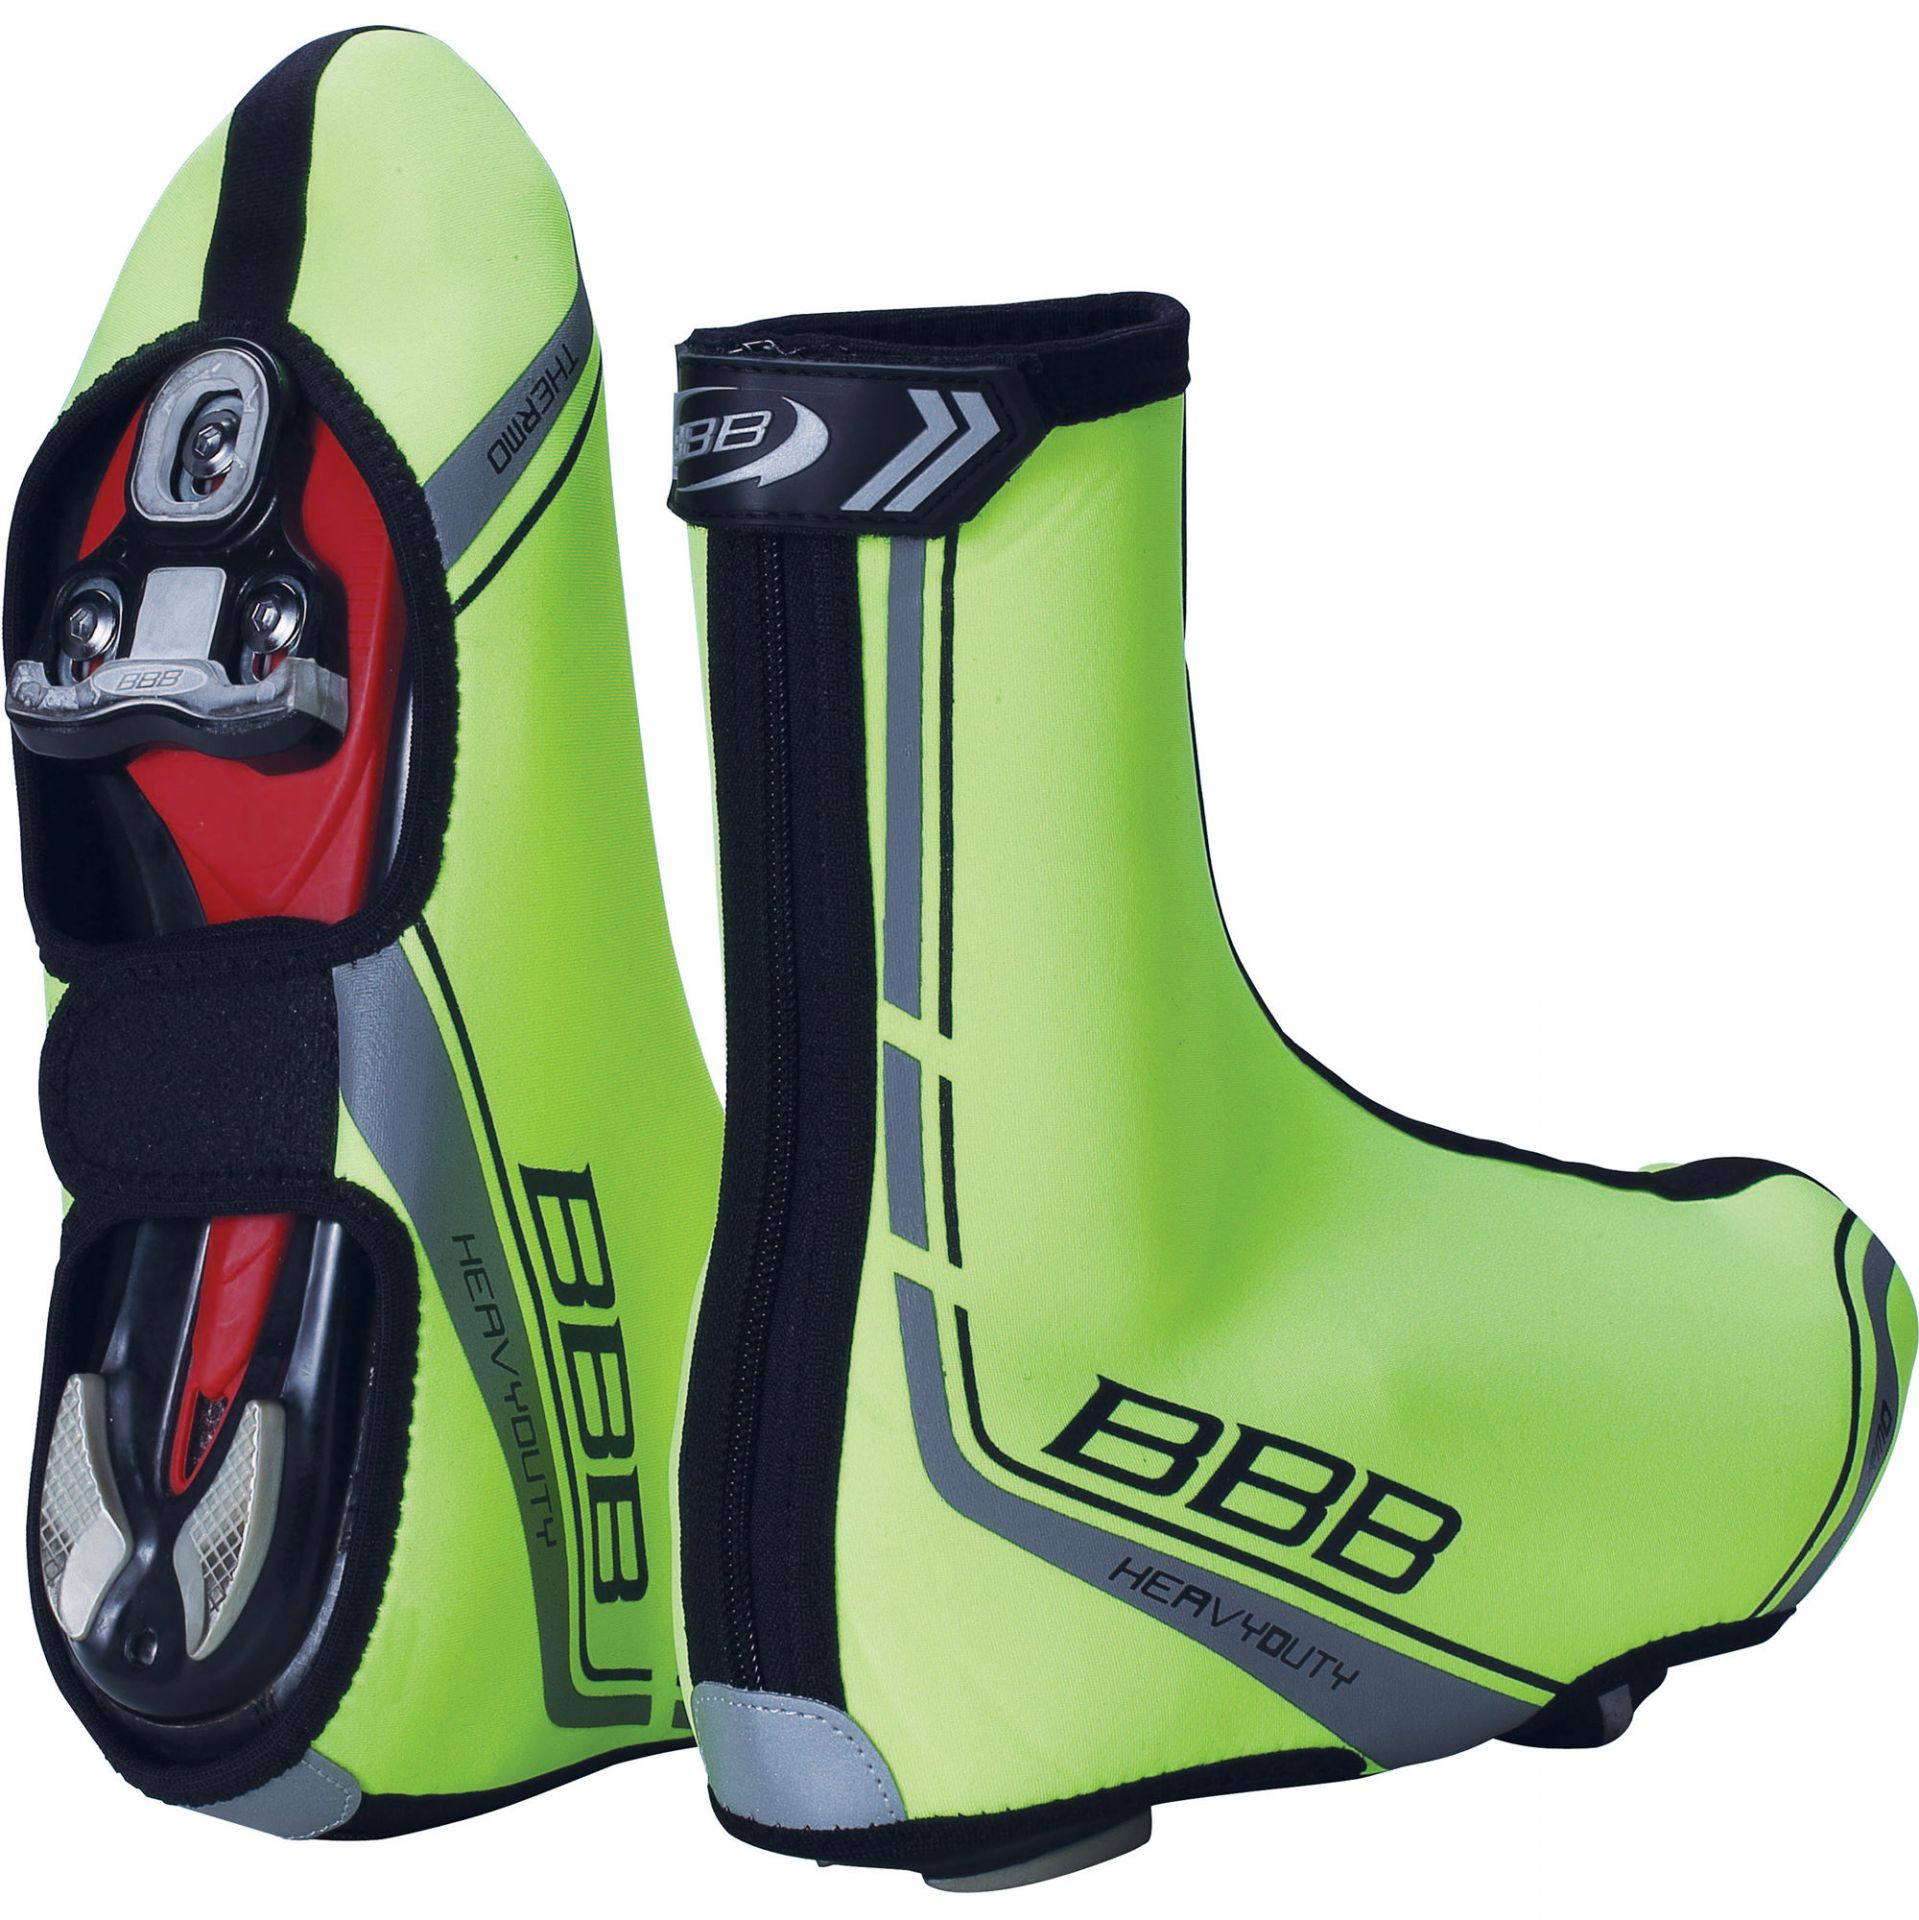 Couvre-chaussures BBB HeavyDuty OSS (Jaune fluo) - BWS-02B - 43/44